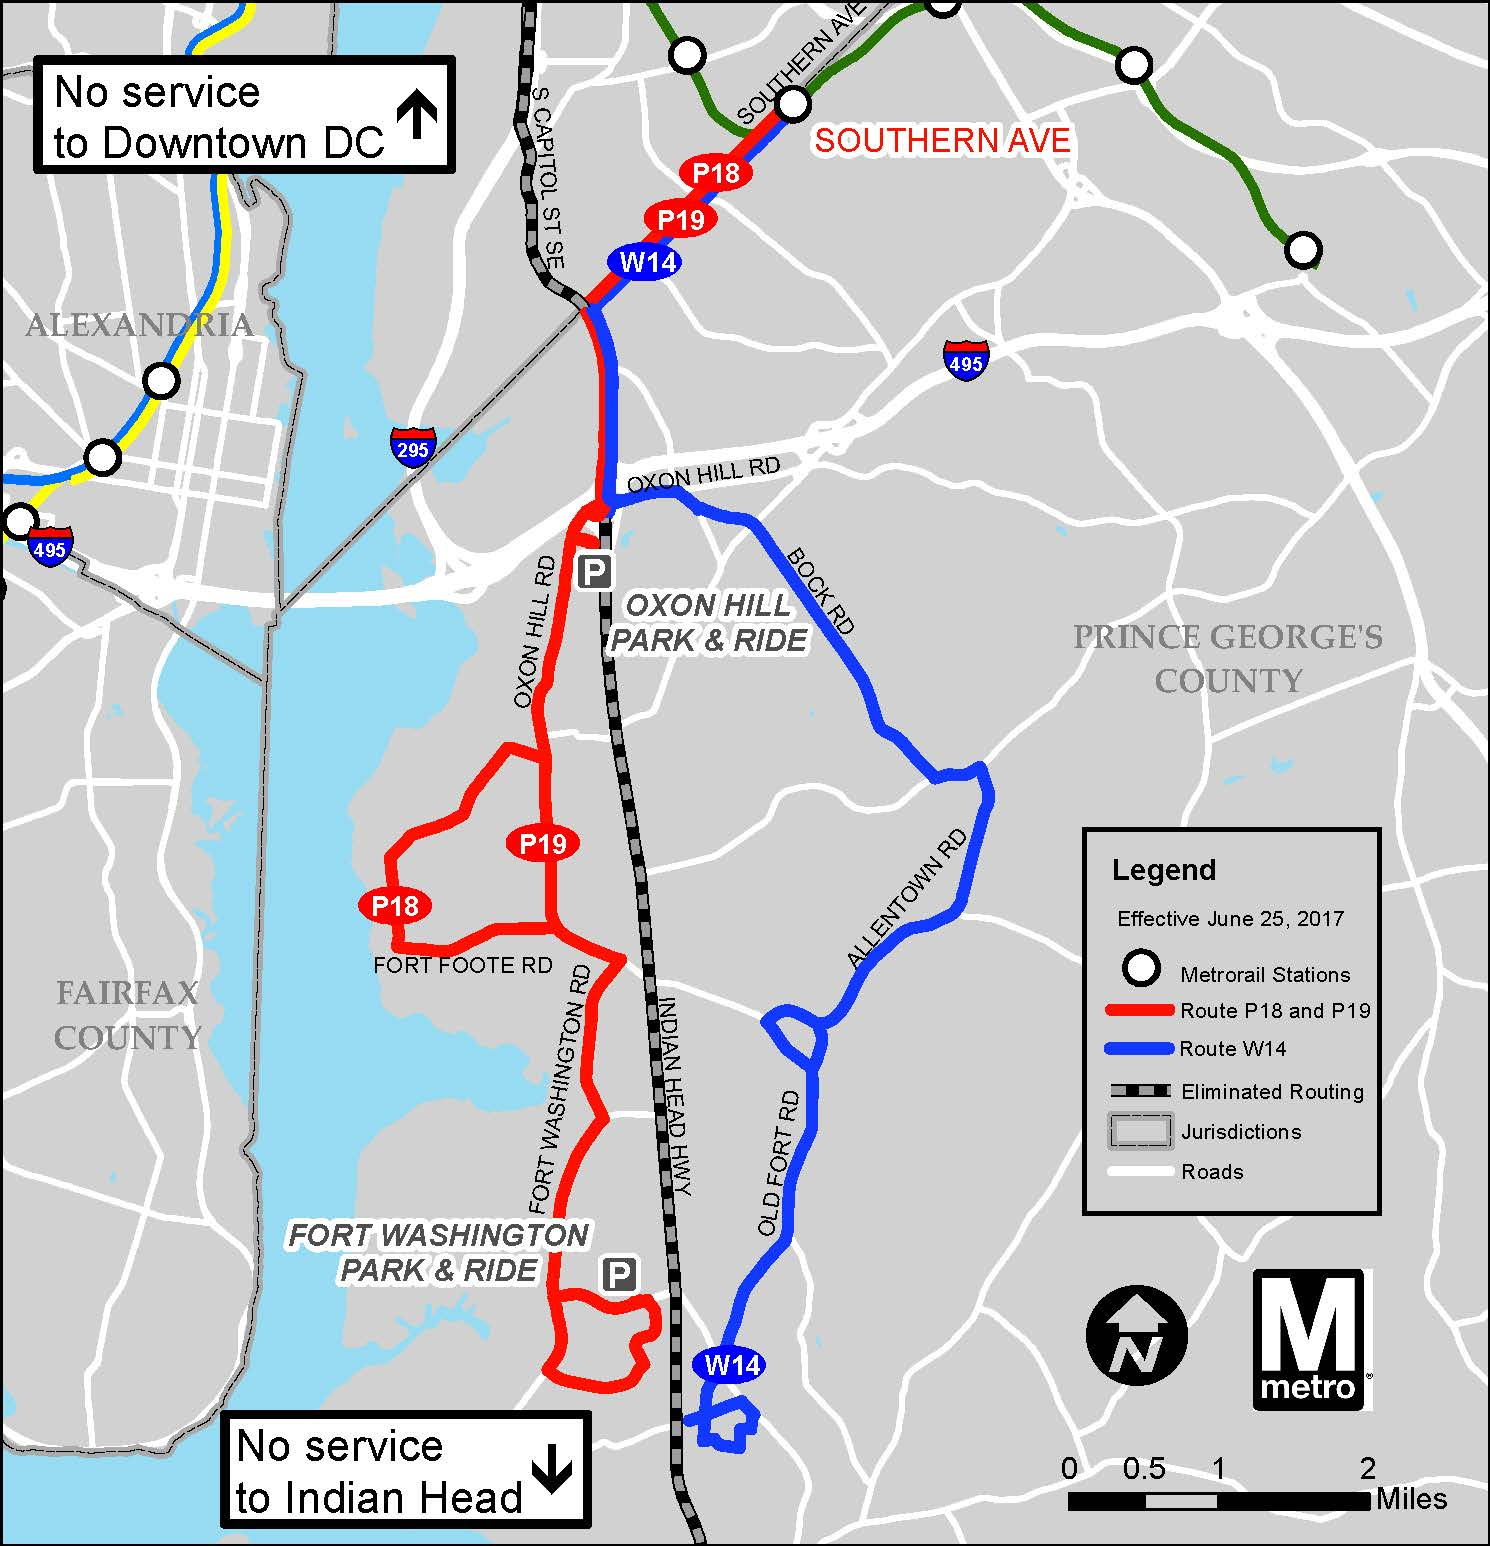 Metrobus Service Changes, June 25 | WMATA on map of dc restaurants, map of dc subway, map of dc highways, map of dc bike paths, map of dc fire stations, map of dc schools, map of dc train, map of dc museums, map of dc bars, map of dc hospitals, map of dc buildings, map of dc airports, map of dc bridges, map of dc metro stations,